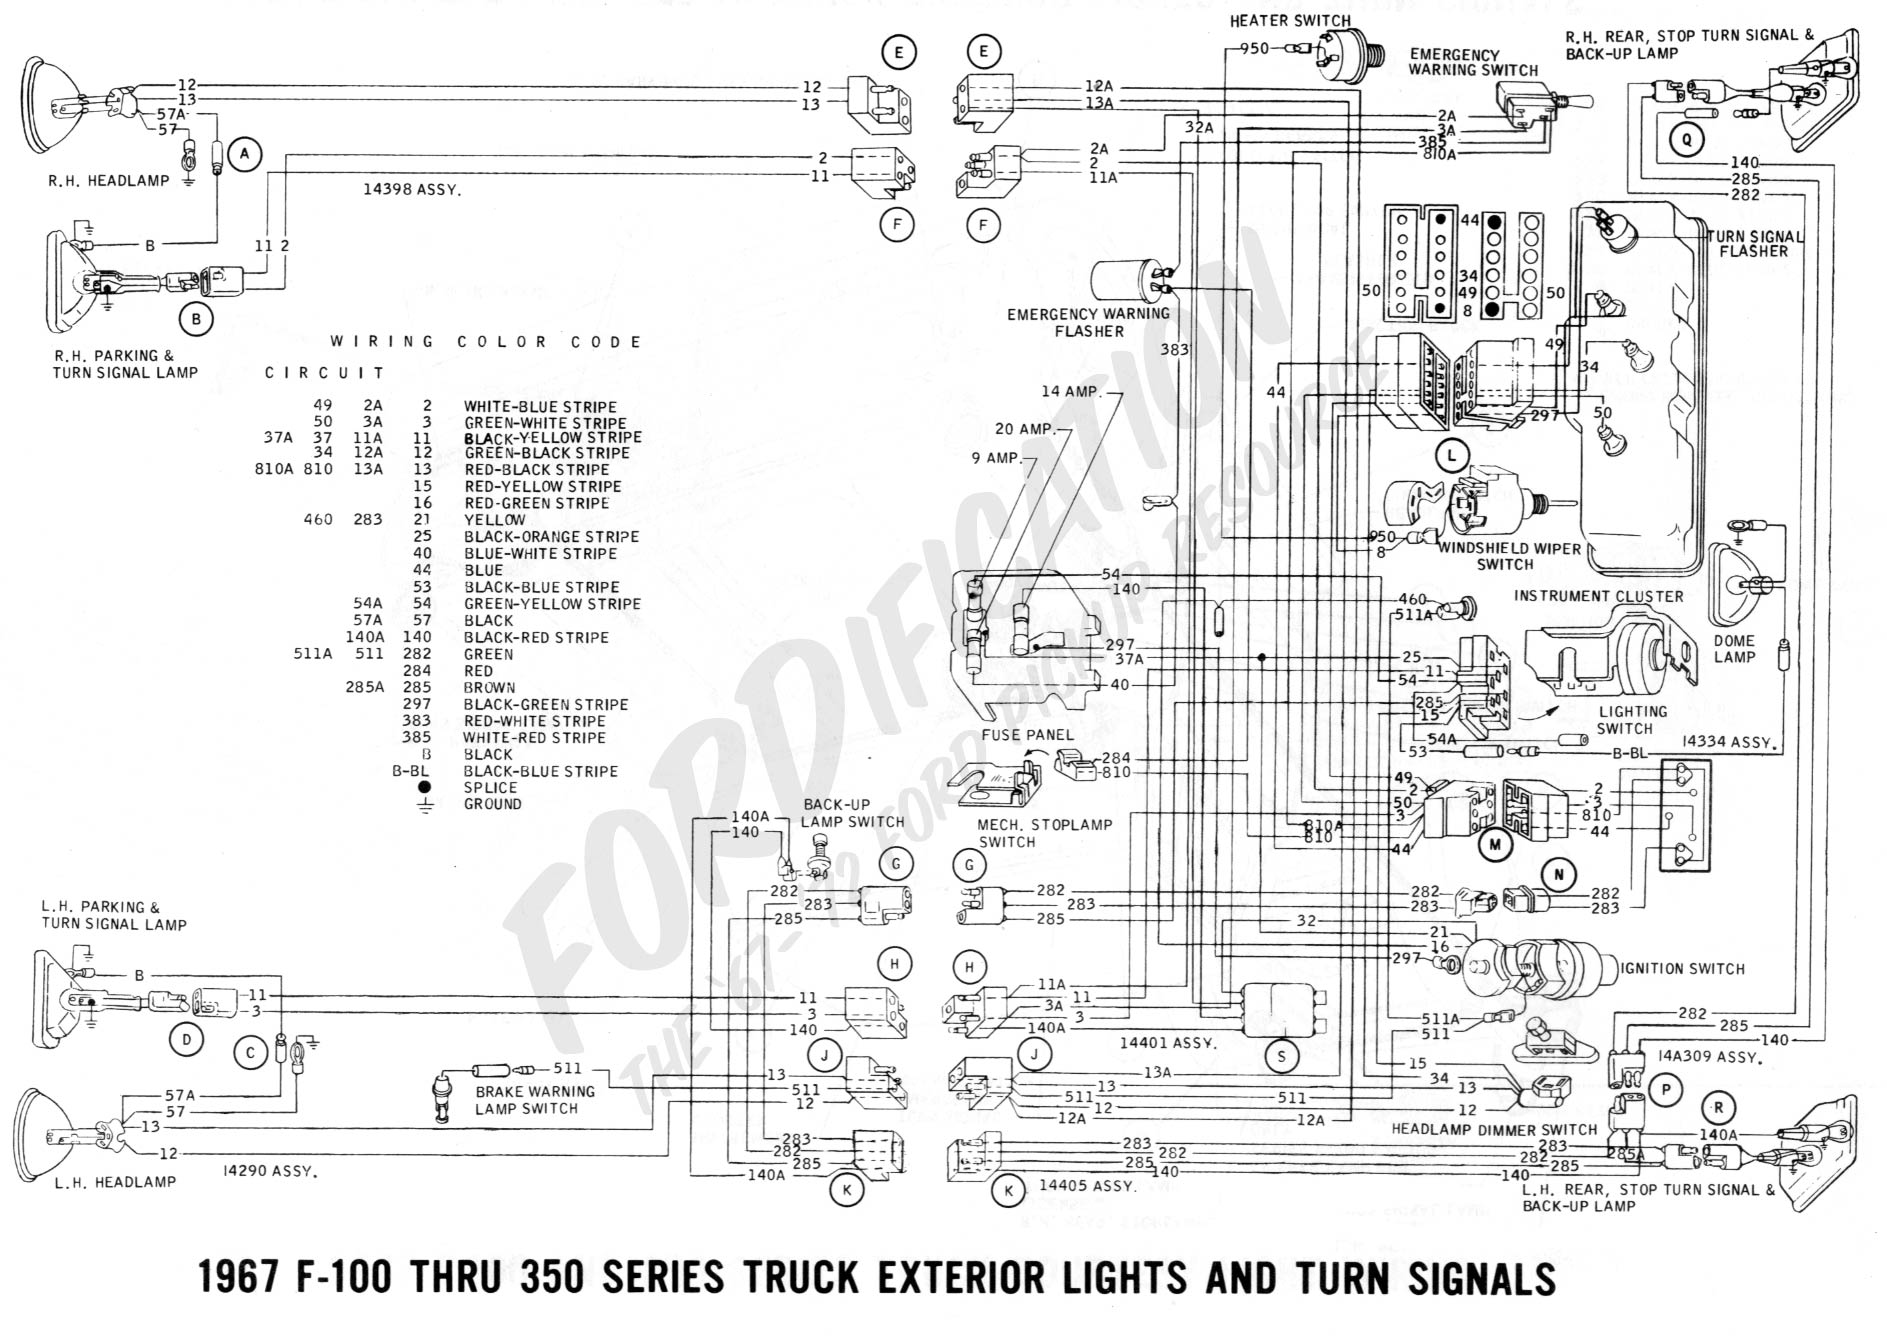 Schematics h on 2015 chevrolet camaro tail light